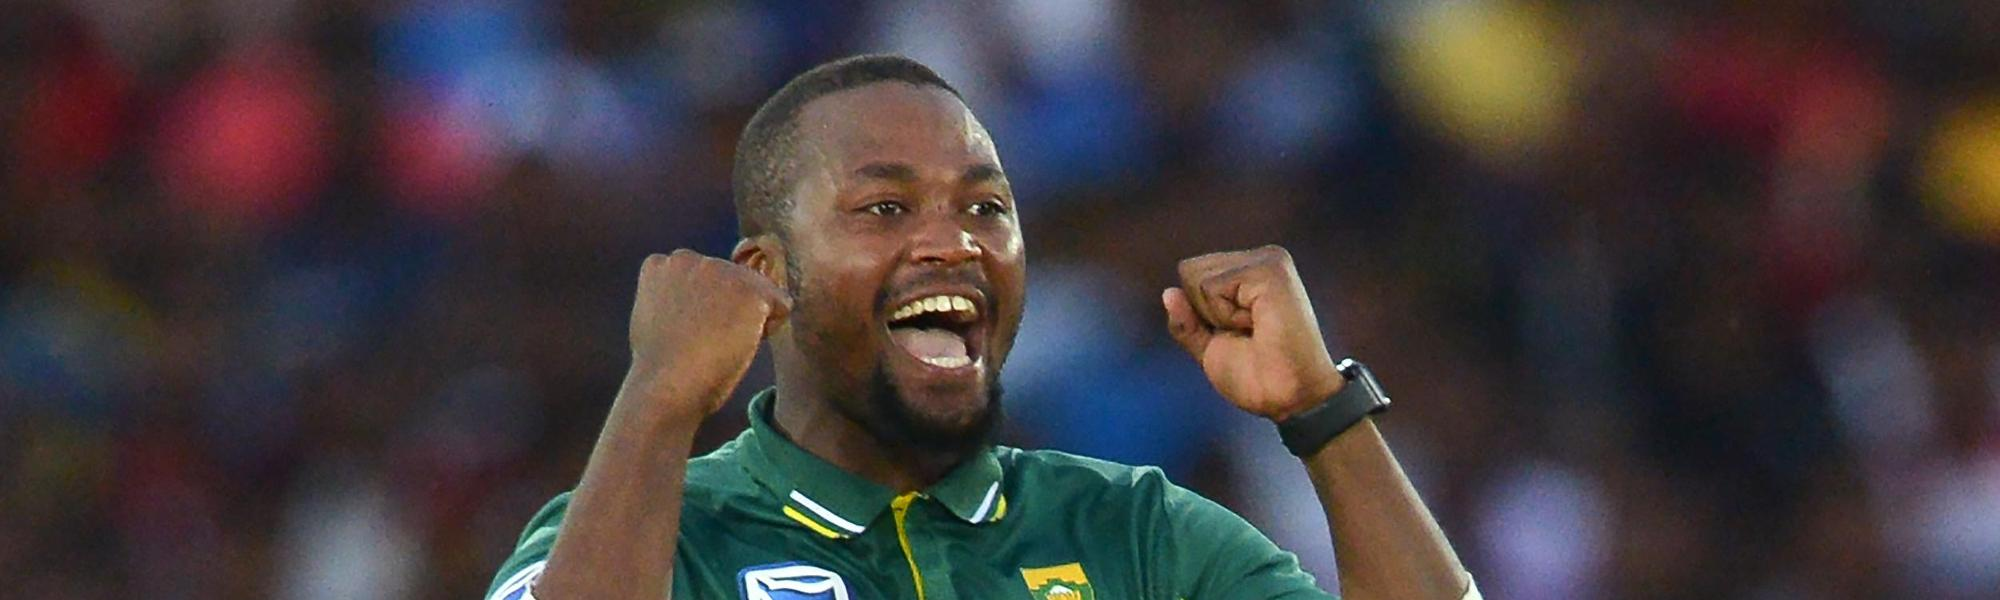 Andile Phehlukwayo is relishing role as a death bowler